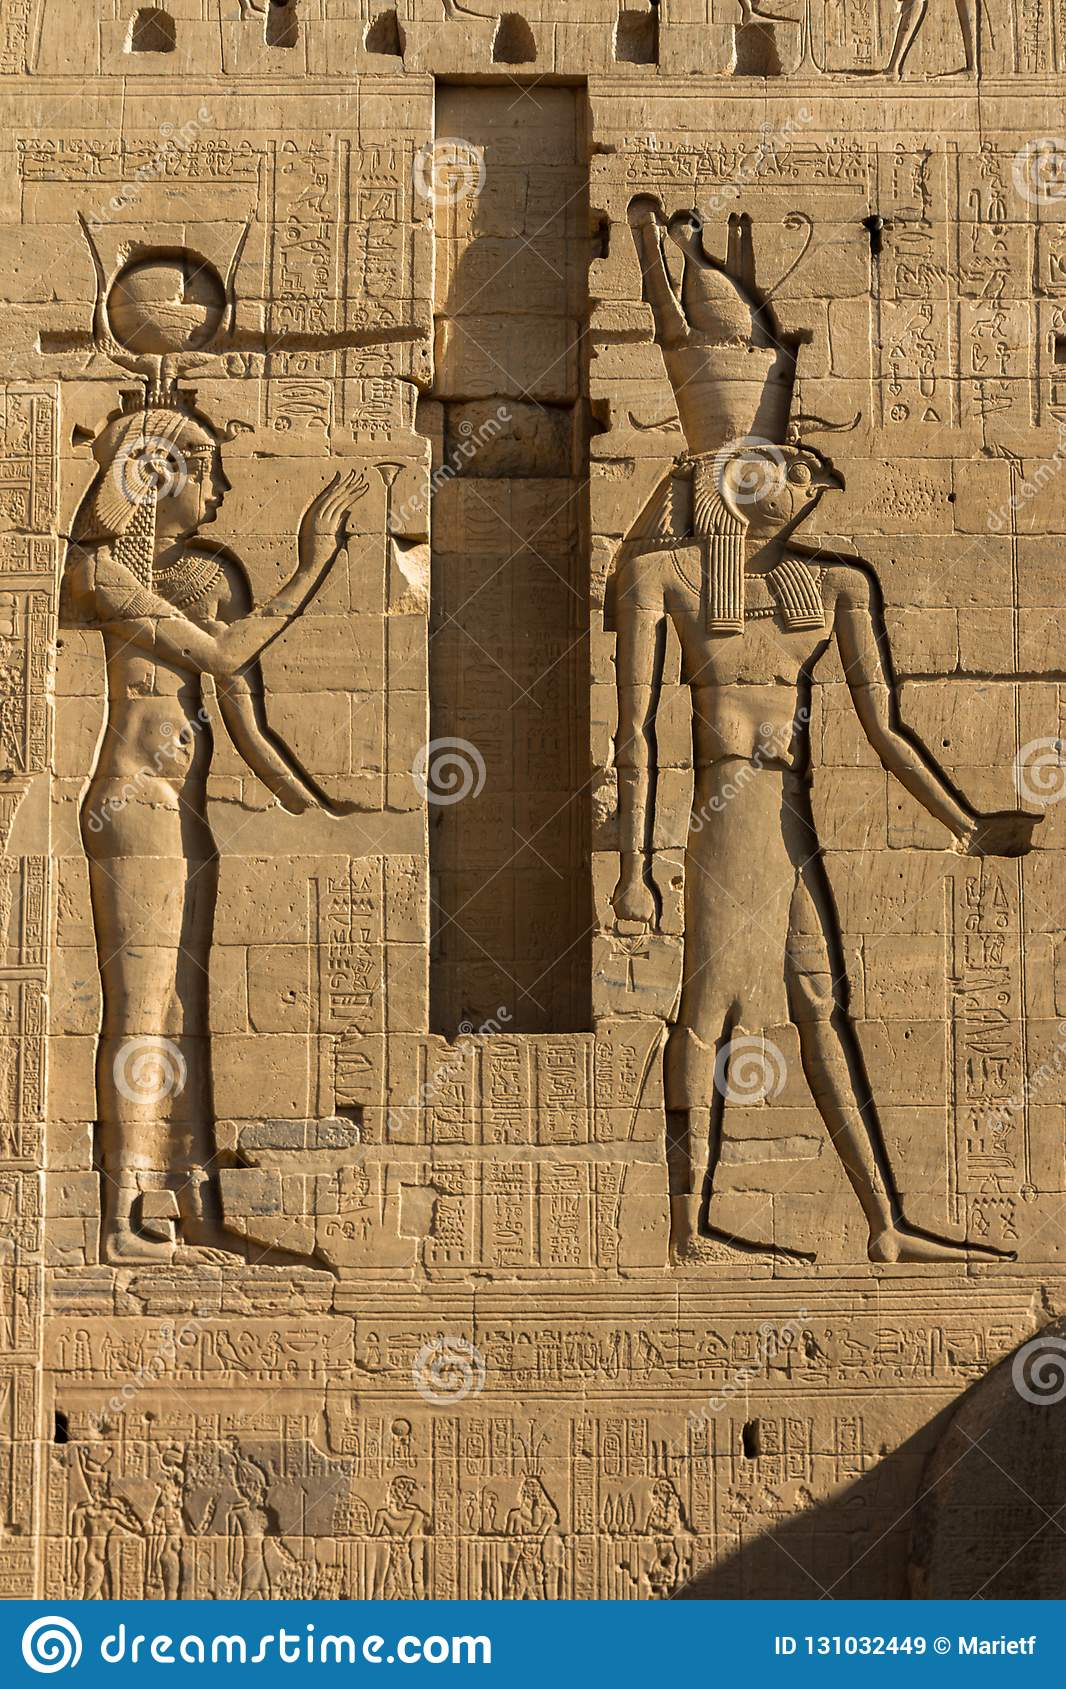 Relief carvings of hathor and osiris on the first pylon of the